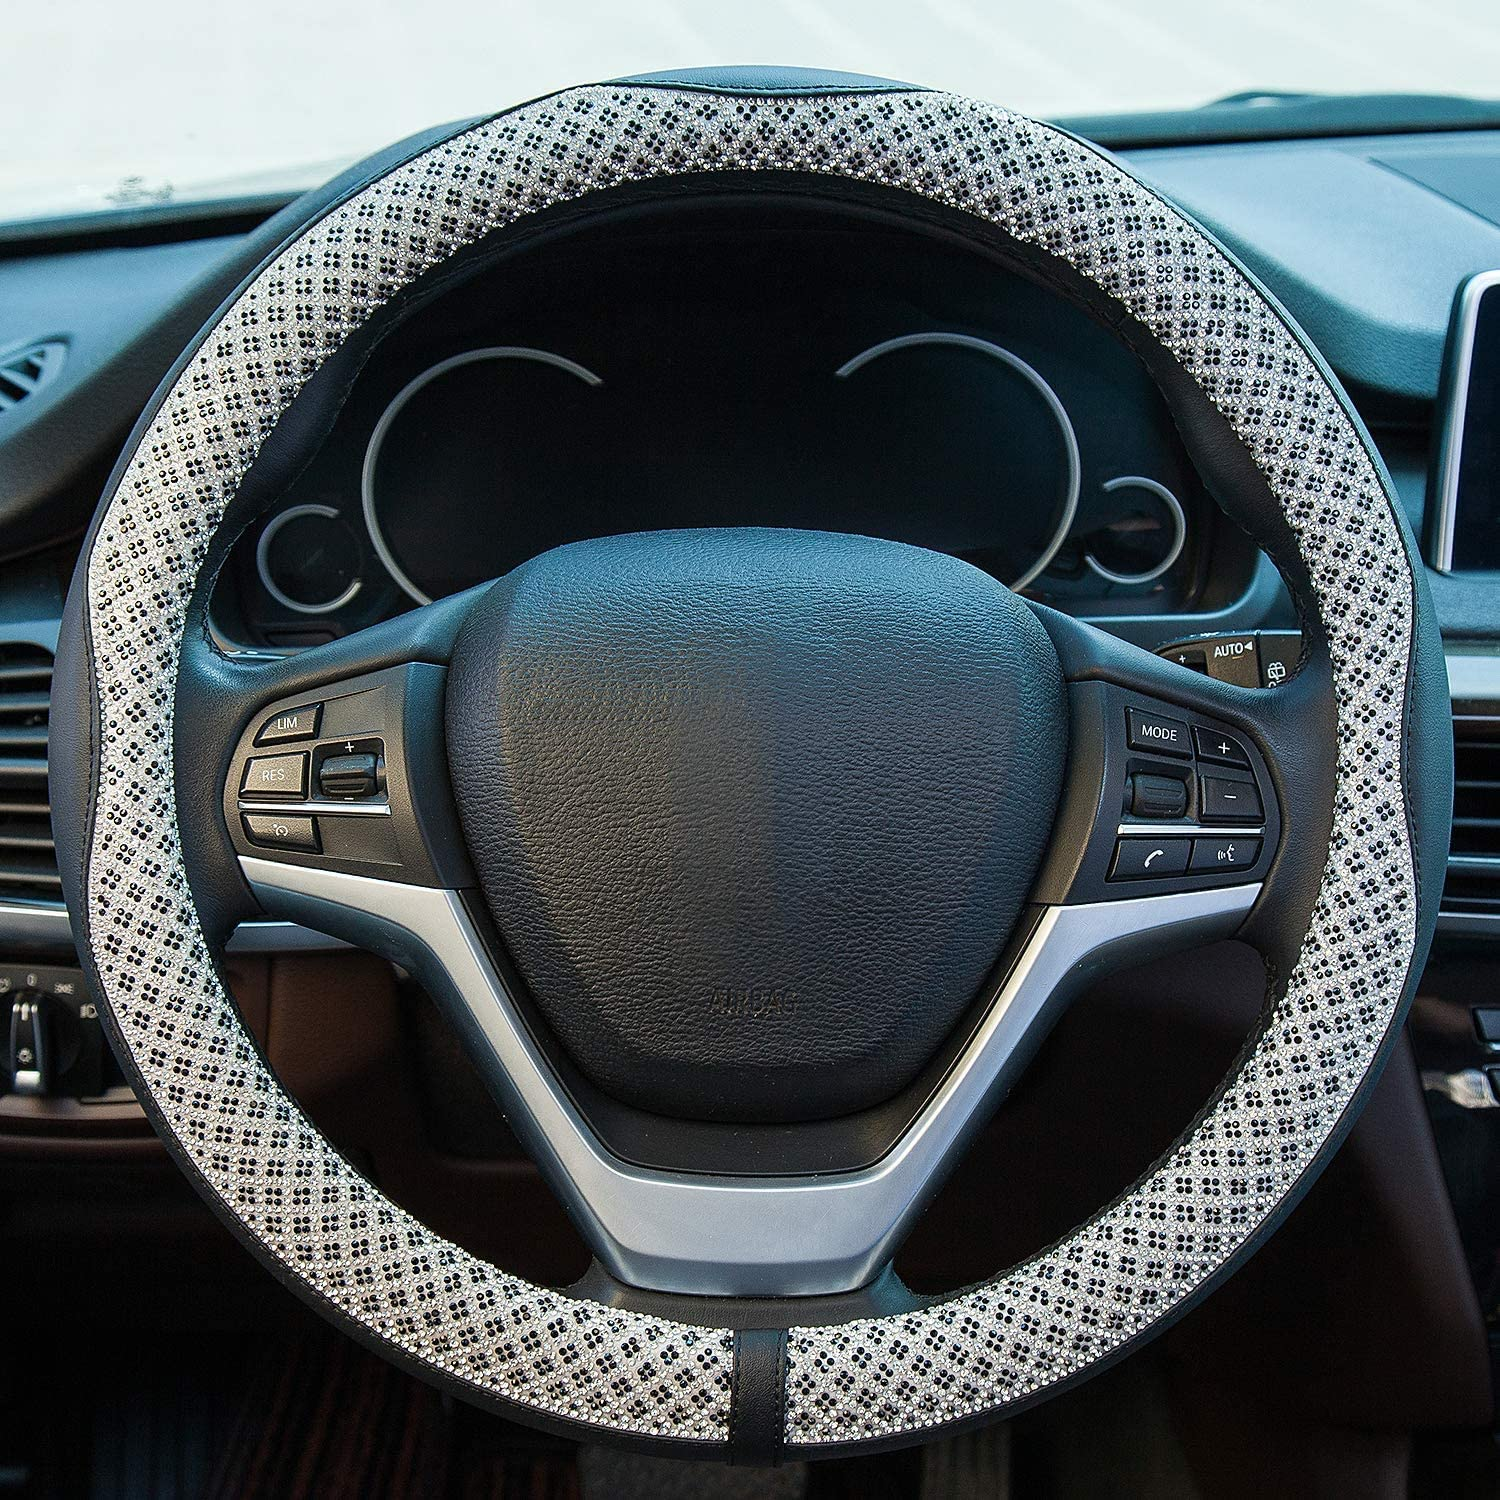 Black Valleycomfy Universal 15 inch Diamond Crystal Leather Steering Wheel Cover for HRV CRV Accord Corolla Prius Rav4 Tacoma Camry X1 X3 X5 335i 535i,etc